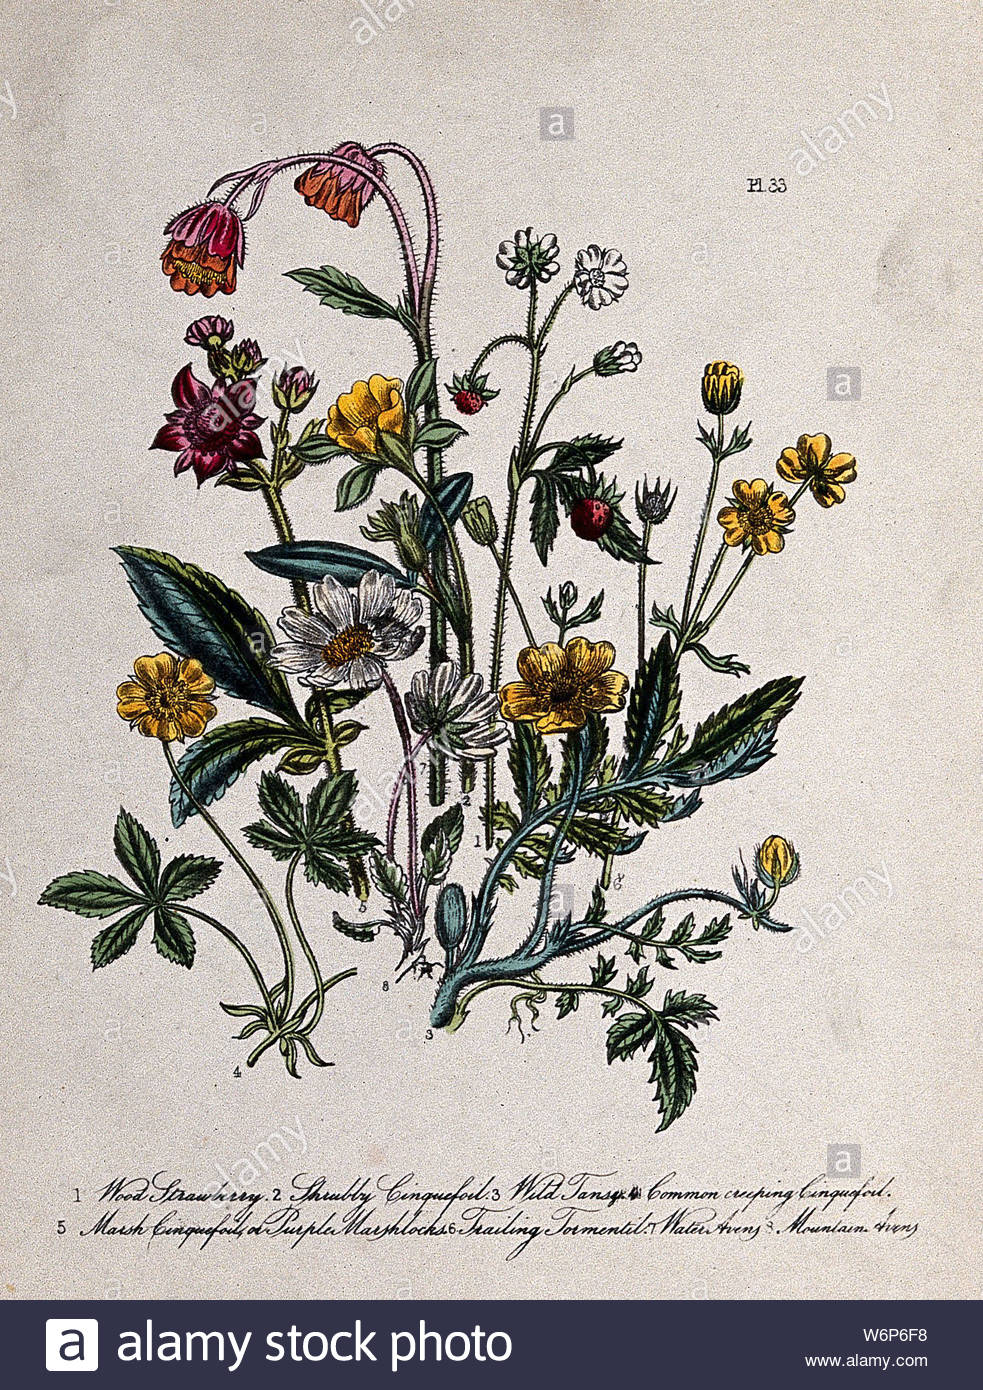 eight british wild flowers including wild strawberry fragaria vesca cinquefoils potentilla species and water avens geum rivale coloured lithograph c 1856 after h humphreys W6P6F8